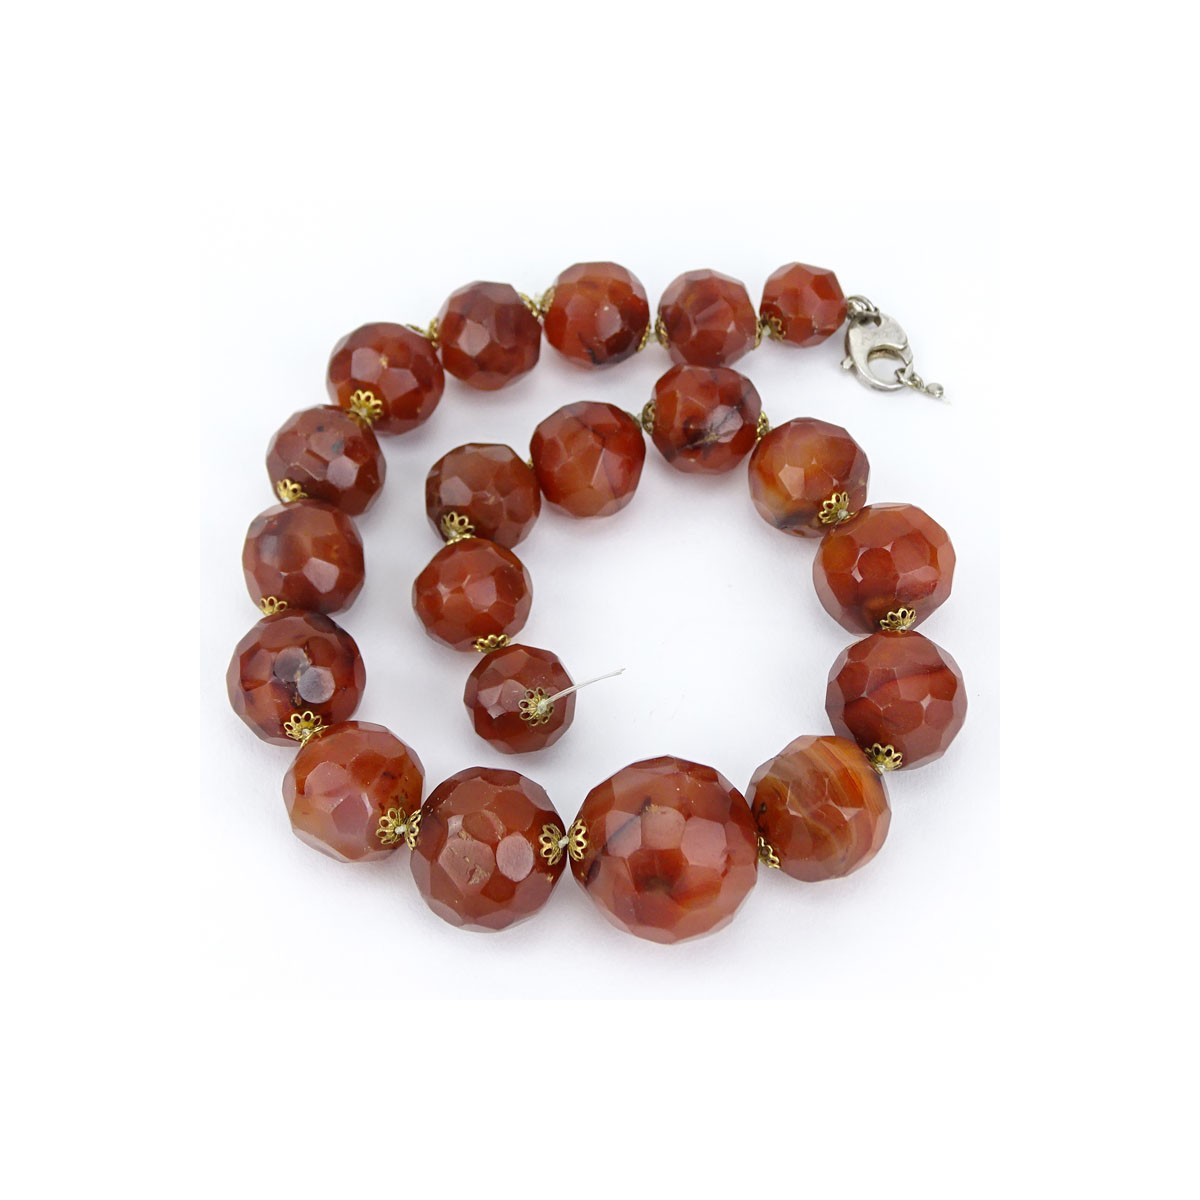 Vintage Syrian Graduated Faceted Red Agate Bead Necklace. Unsigned. Needs small repair to clasp. Go